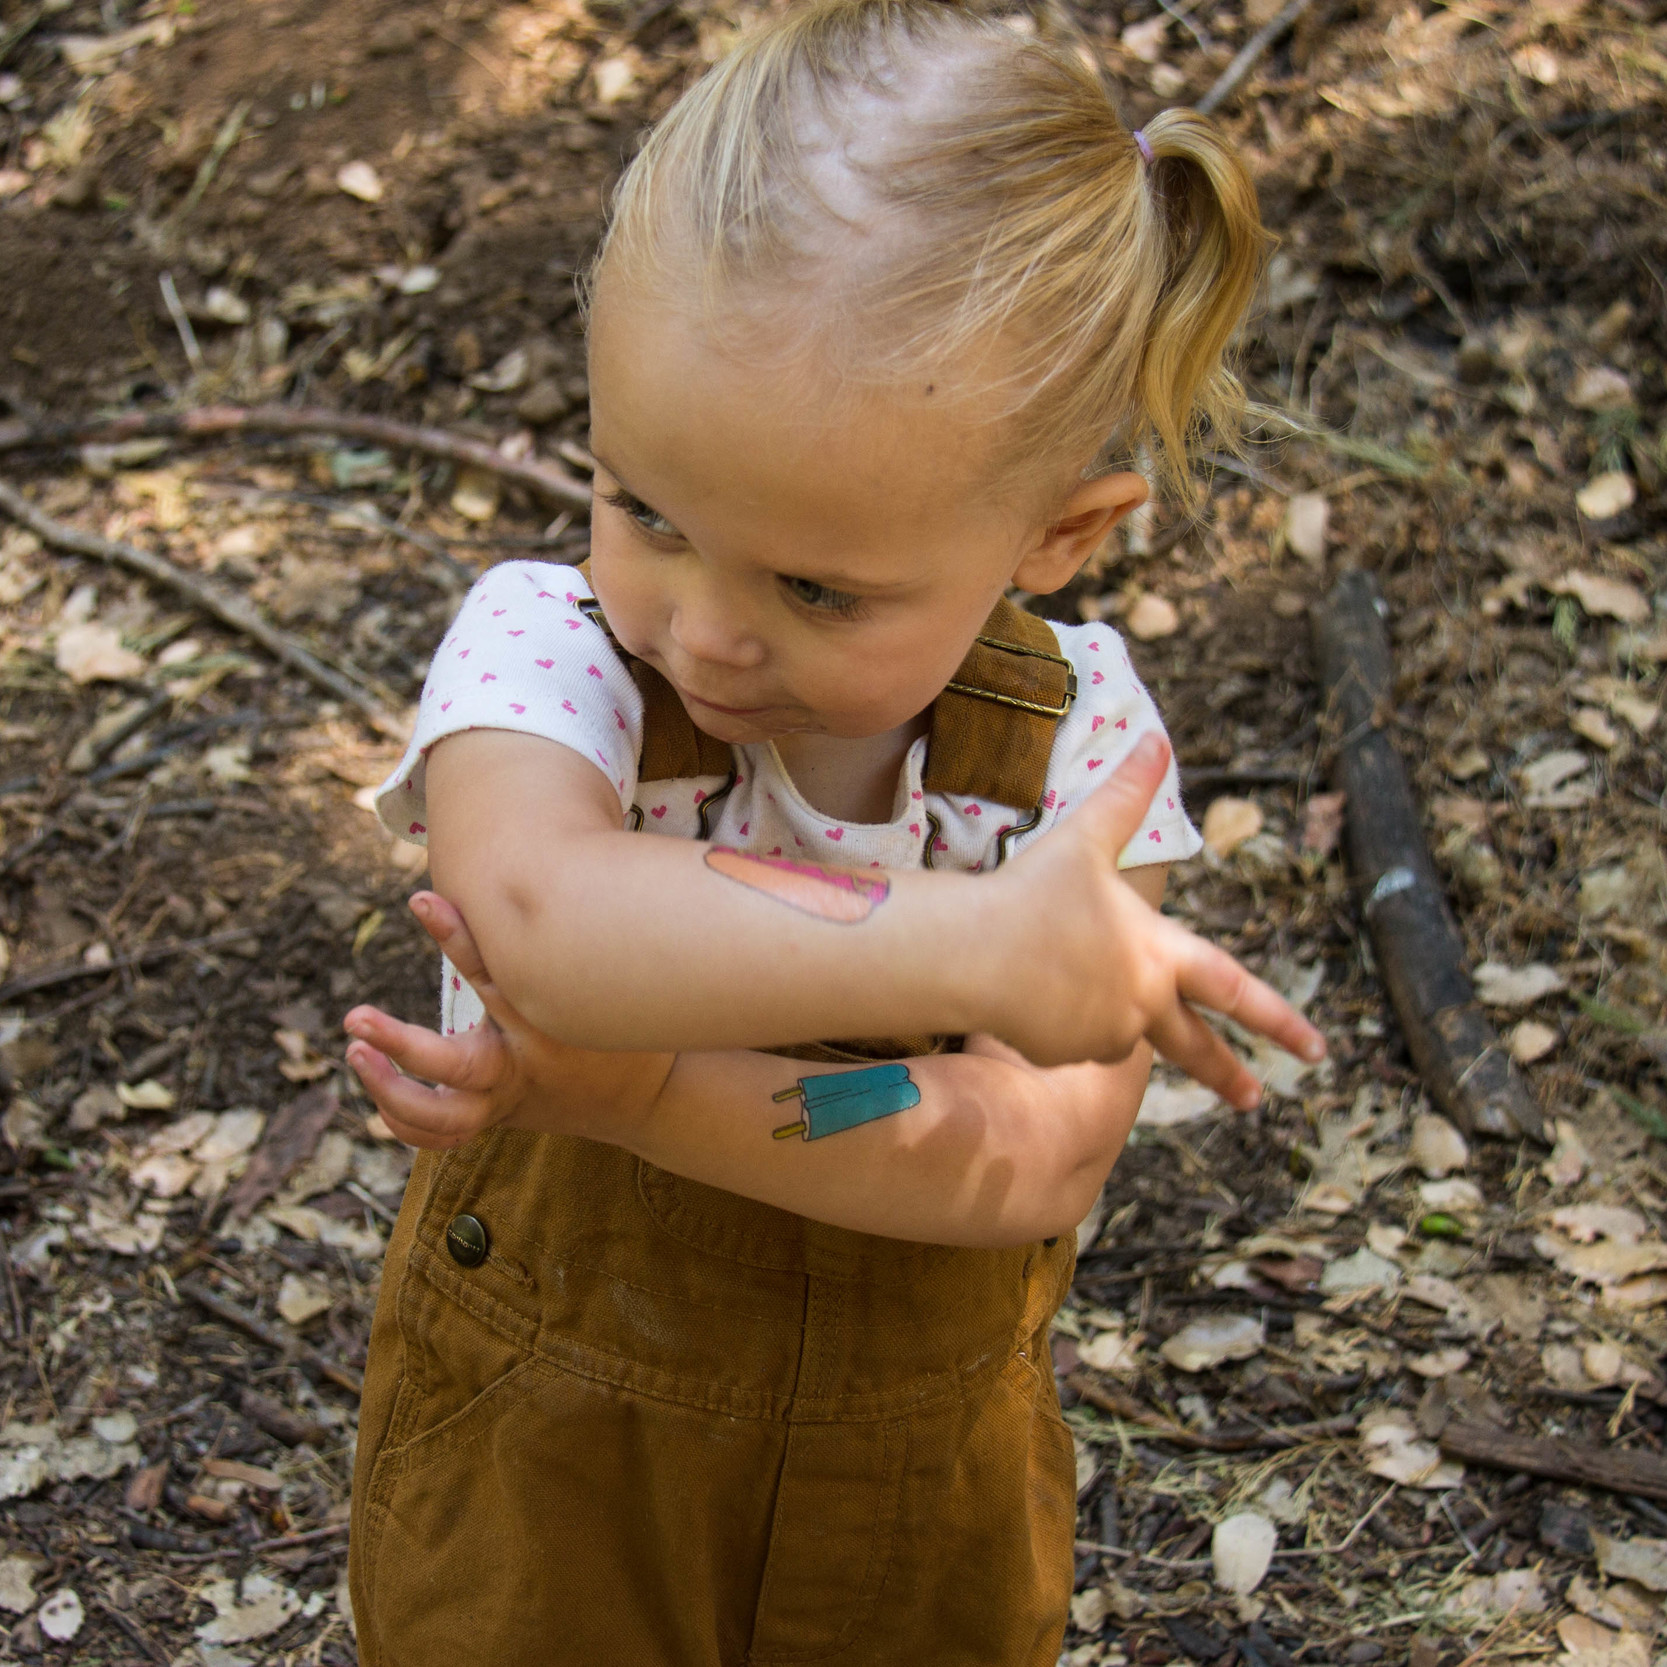 The temporary tattoos were a huge hit with my niece